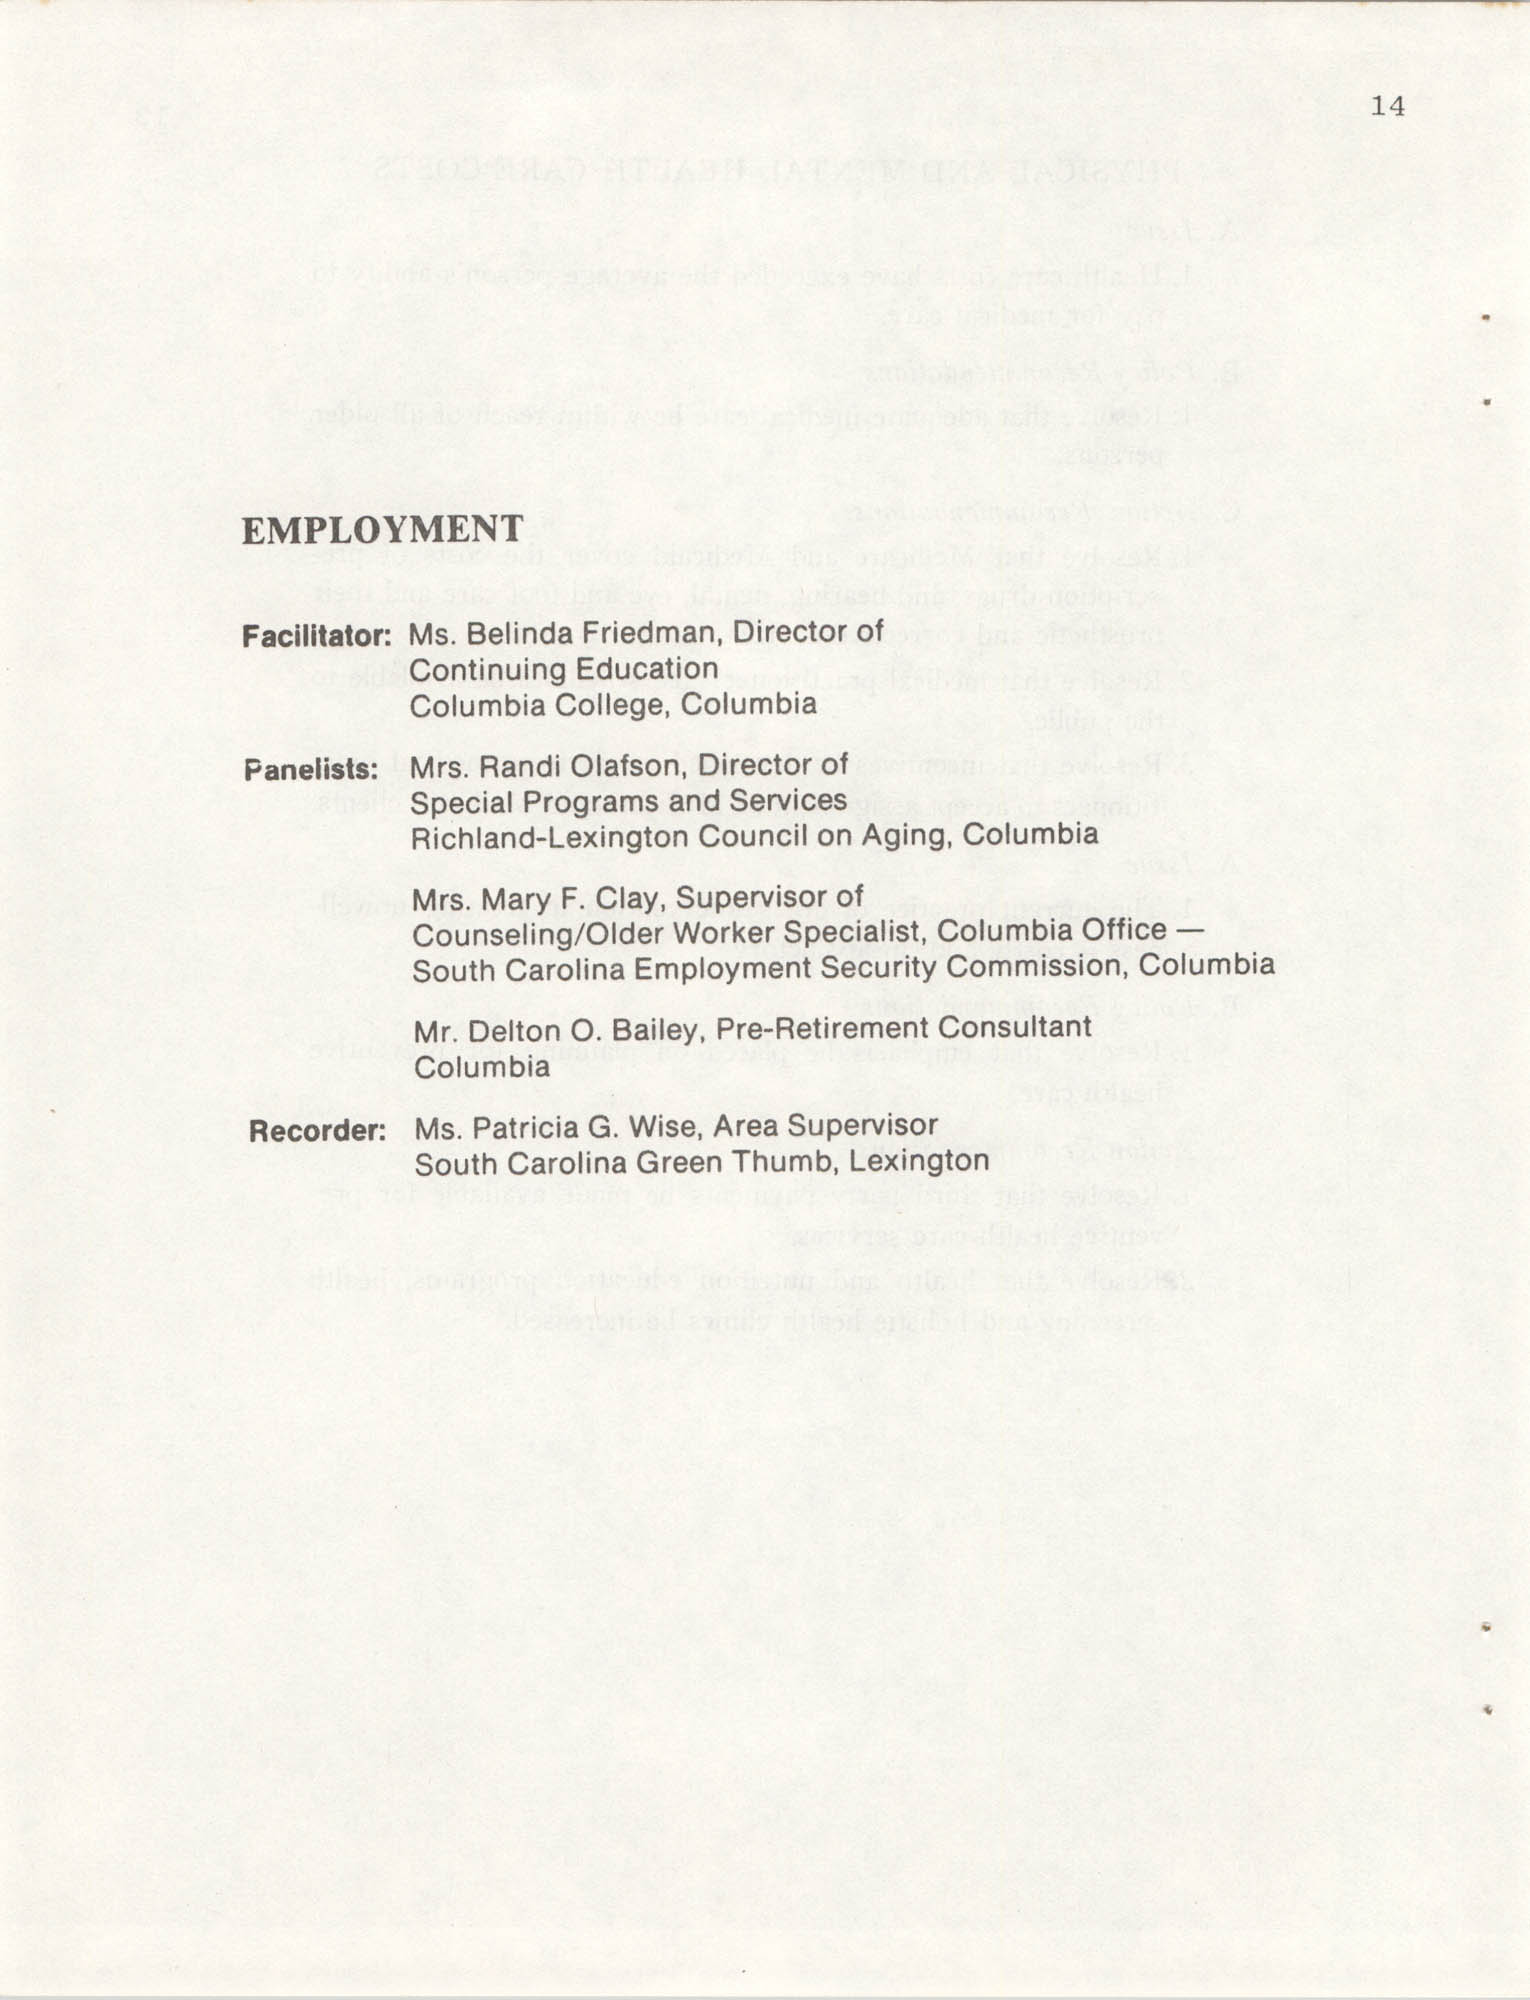 South Carolina Governor's White House Conference on Aging Proceedings, 1981, Page 14